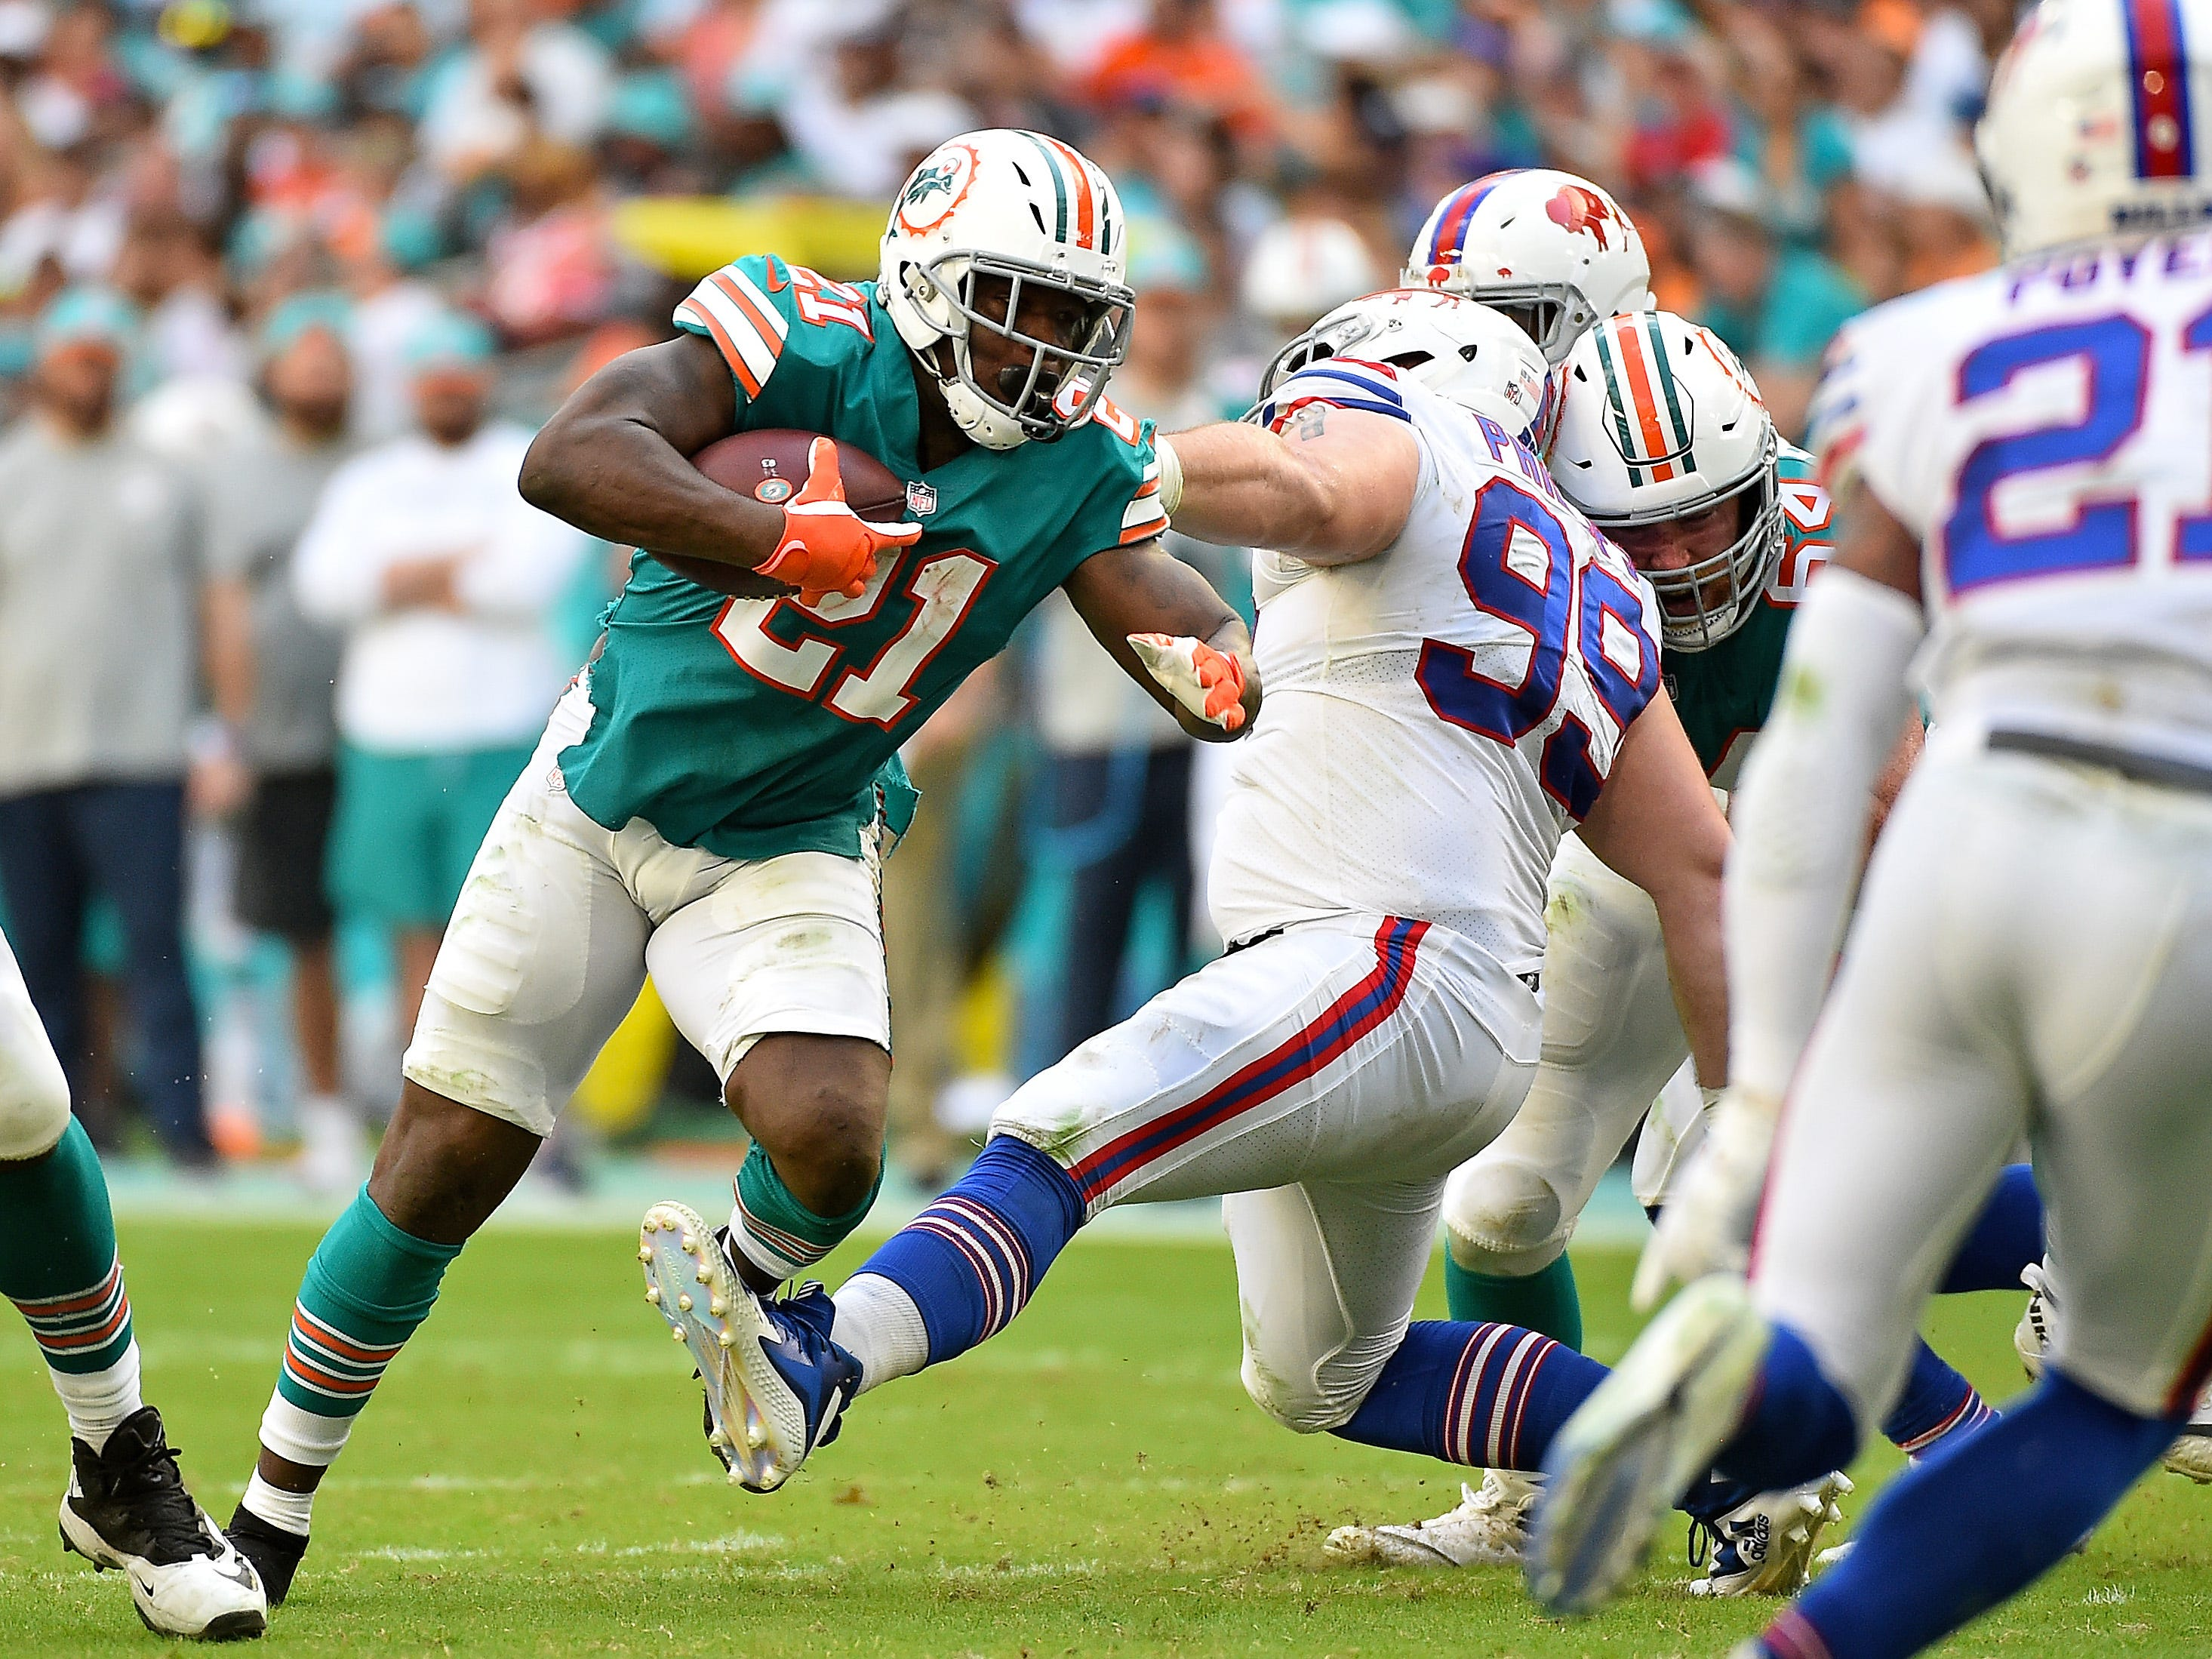 Buffalo Bills defensive tackle Harrison Phillips (99) trips Miami Dolphins running back Frank Gore (21) during the first half at Hard Rock Stadium.